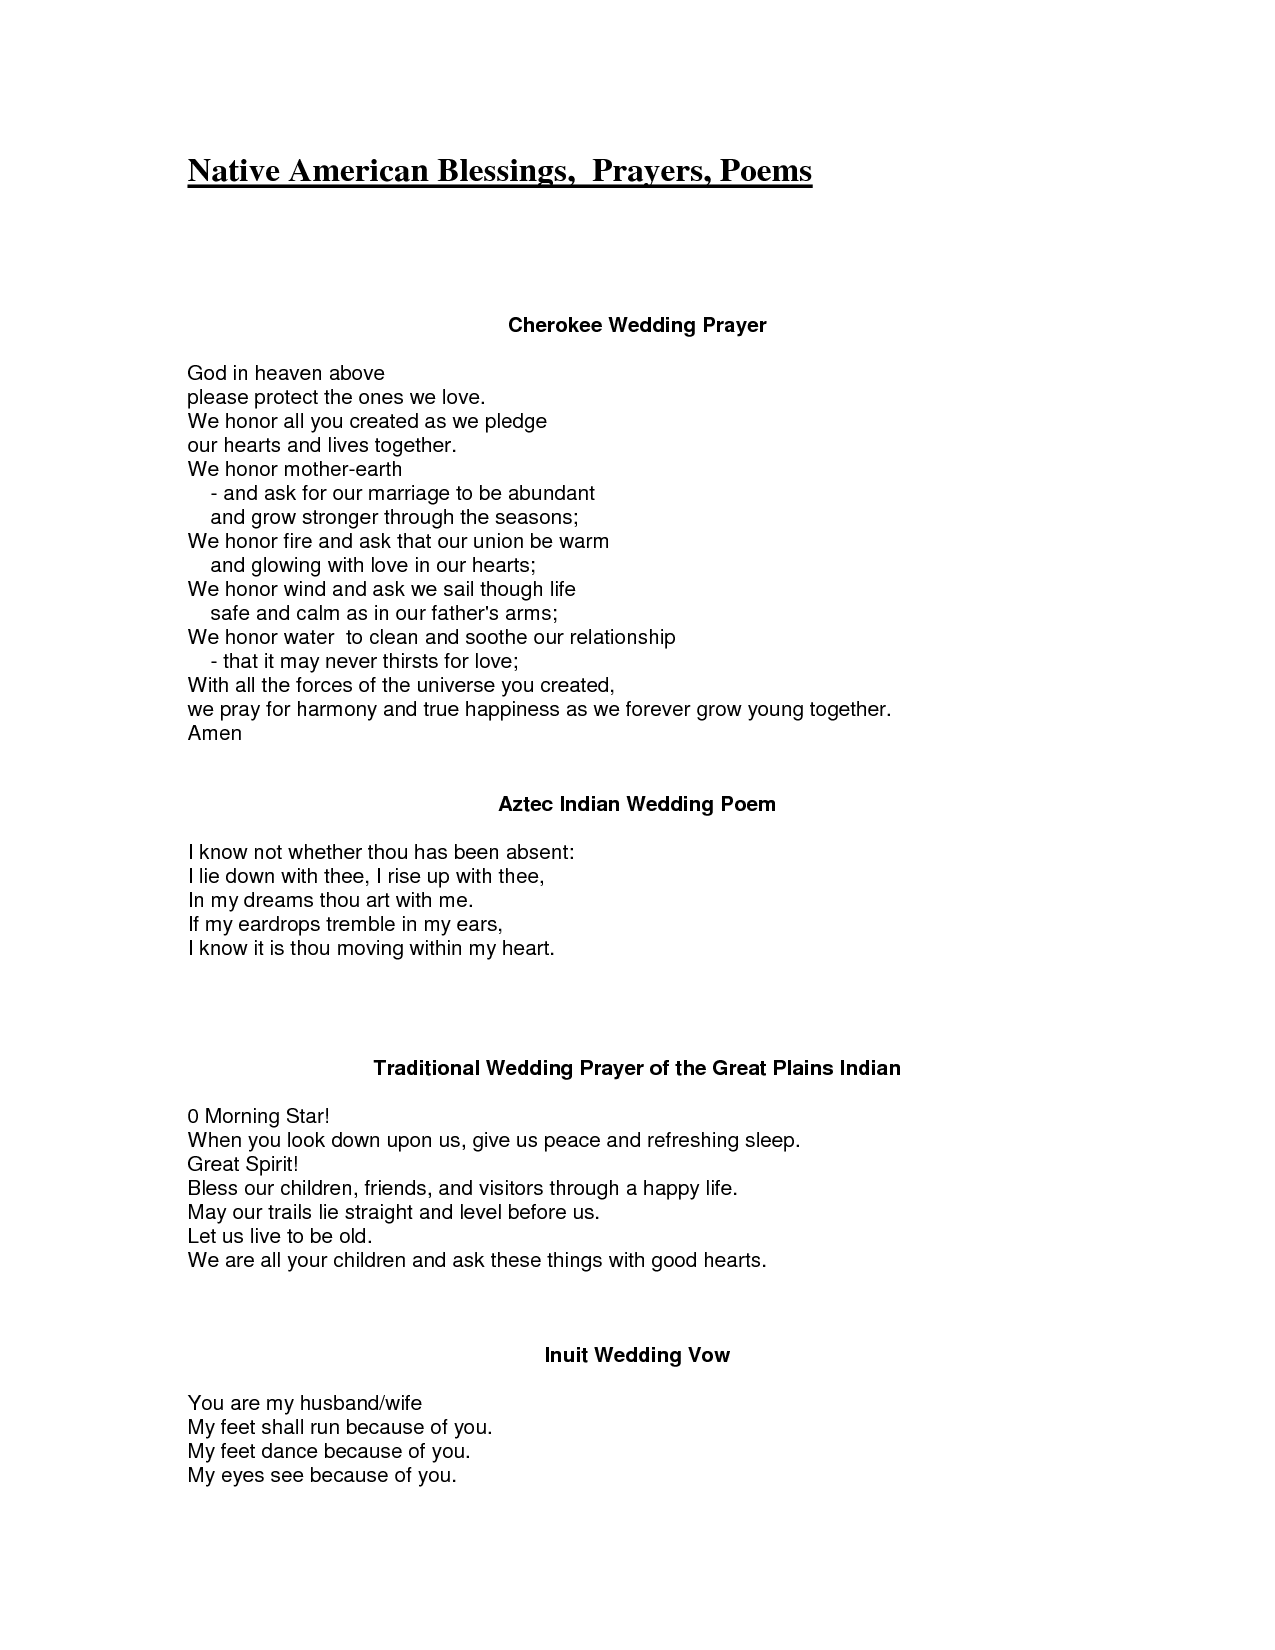 Cherokee Love Poems Native American Wedding